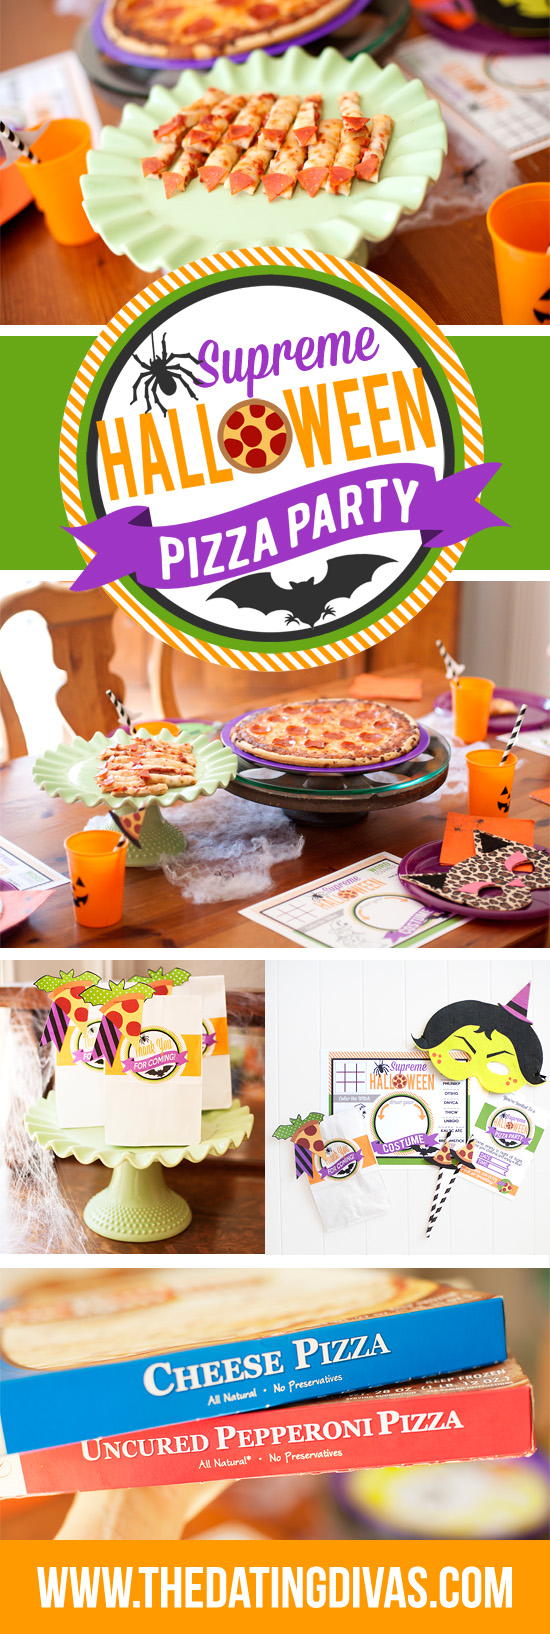 Halloween Pizza Party!